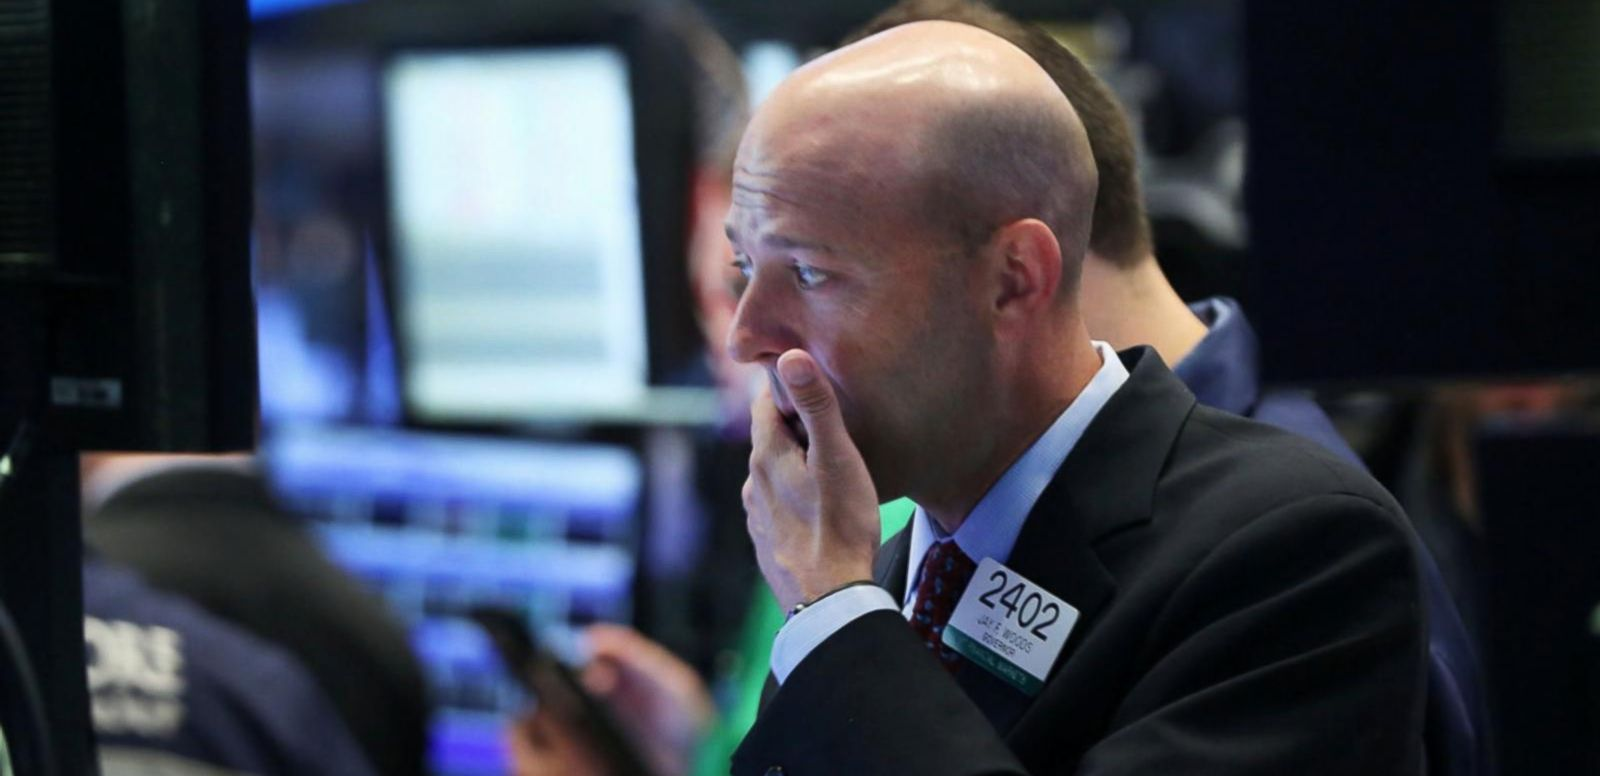 VIDEO: Stocks Continue to Plummet Amid Brexit Fallout